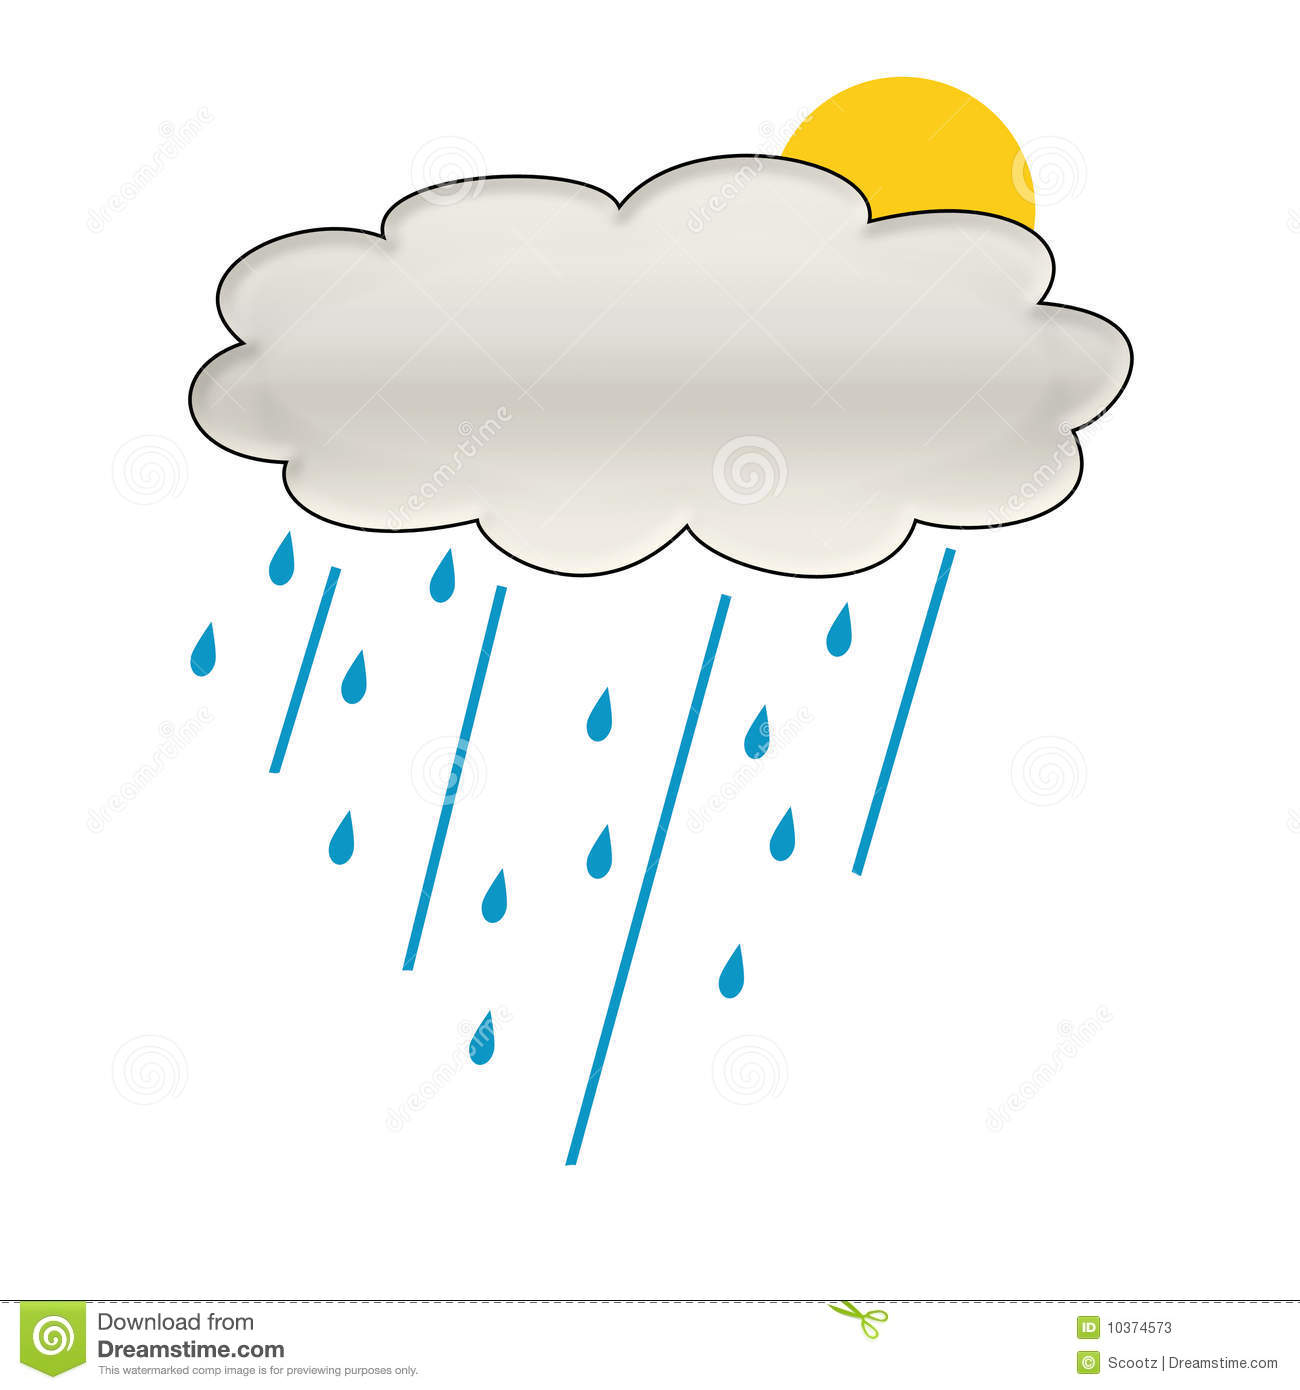 More similar stock images of ` Rain cloud illustration `